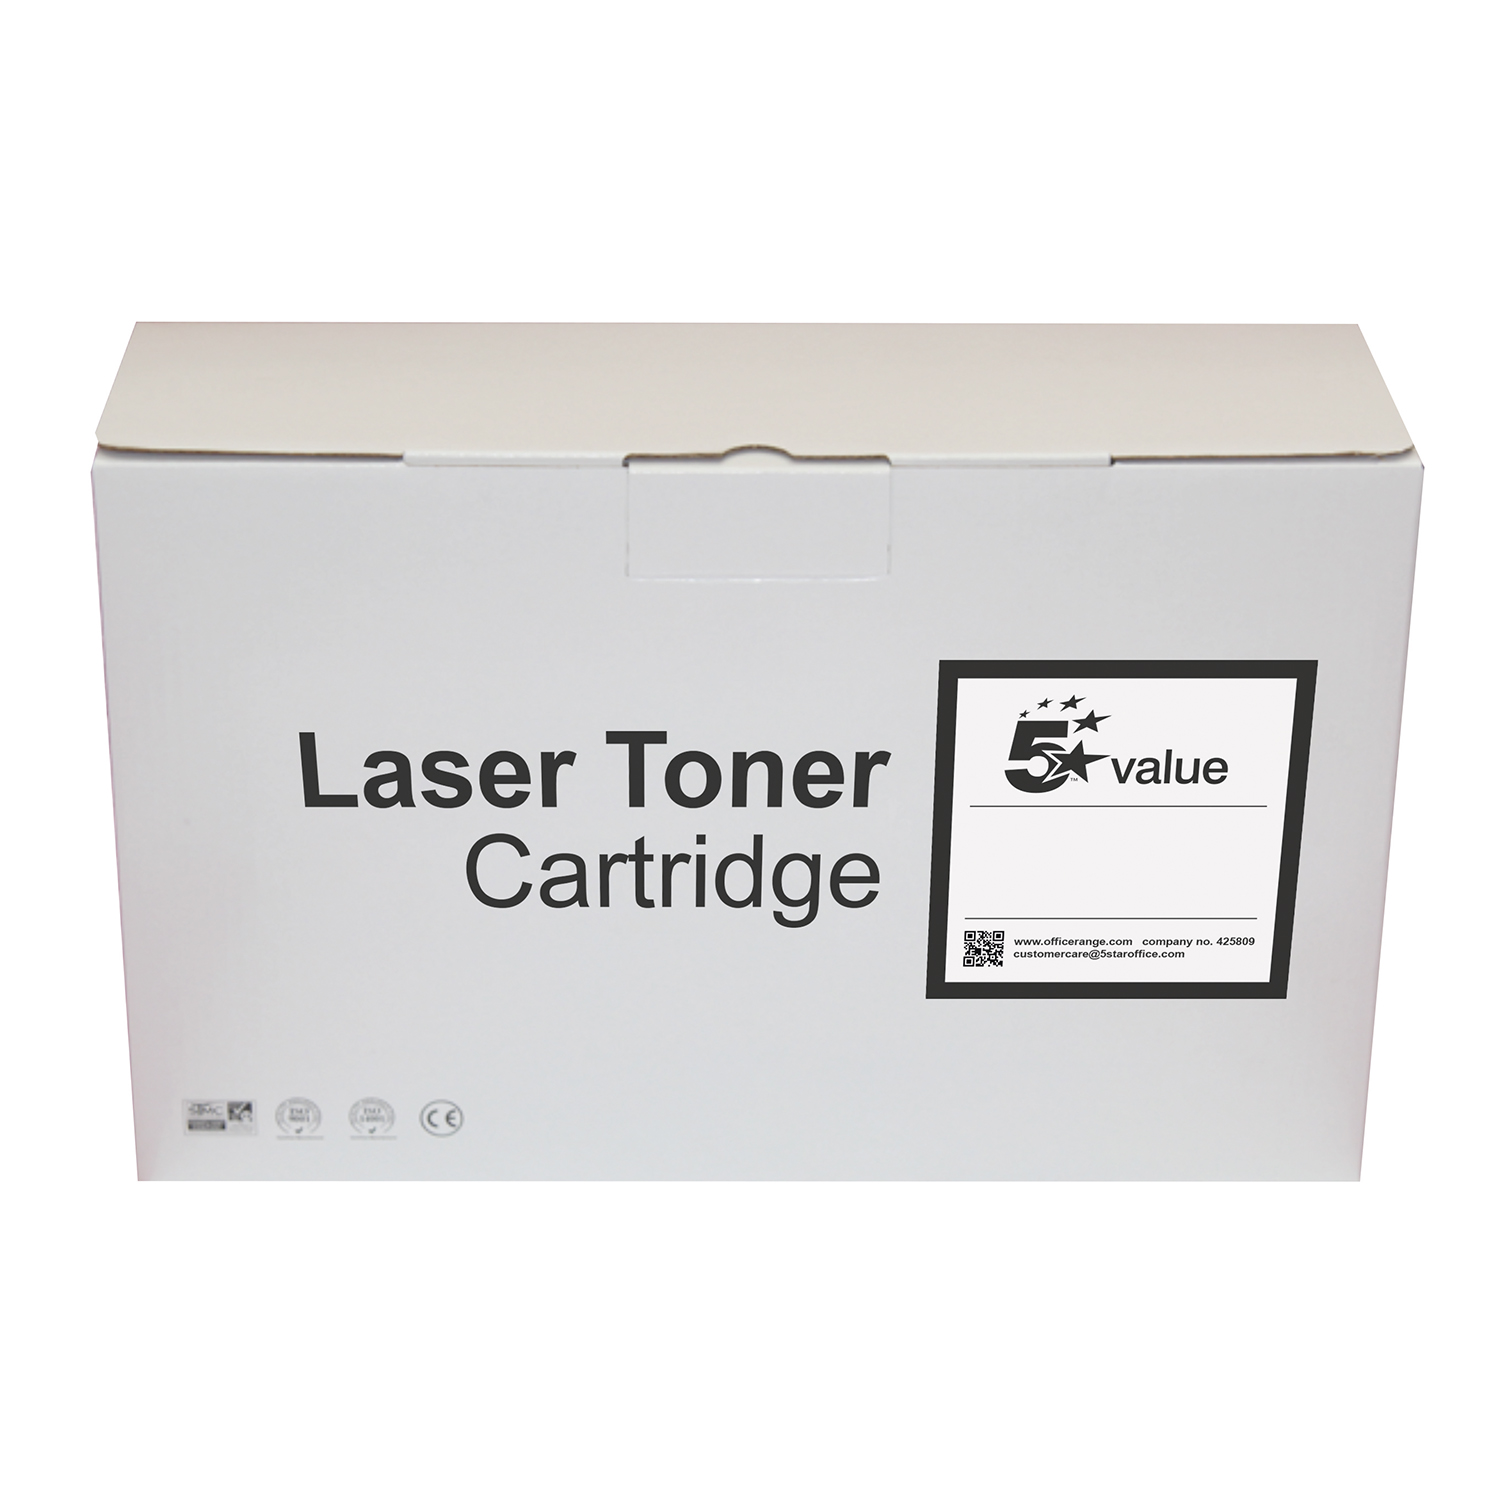 5 Star Value Remanufactured Laser Toner Cartridge Page Life 8000pp Black [Brother TN3380 Alternative]